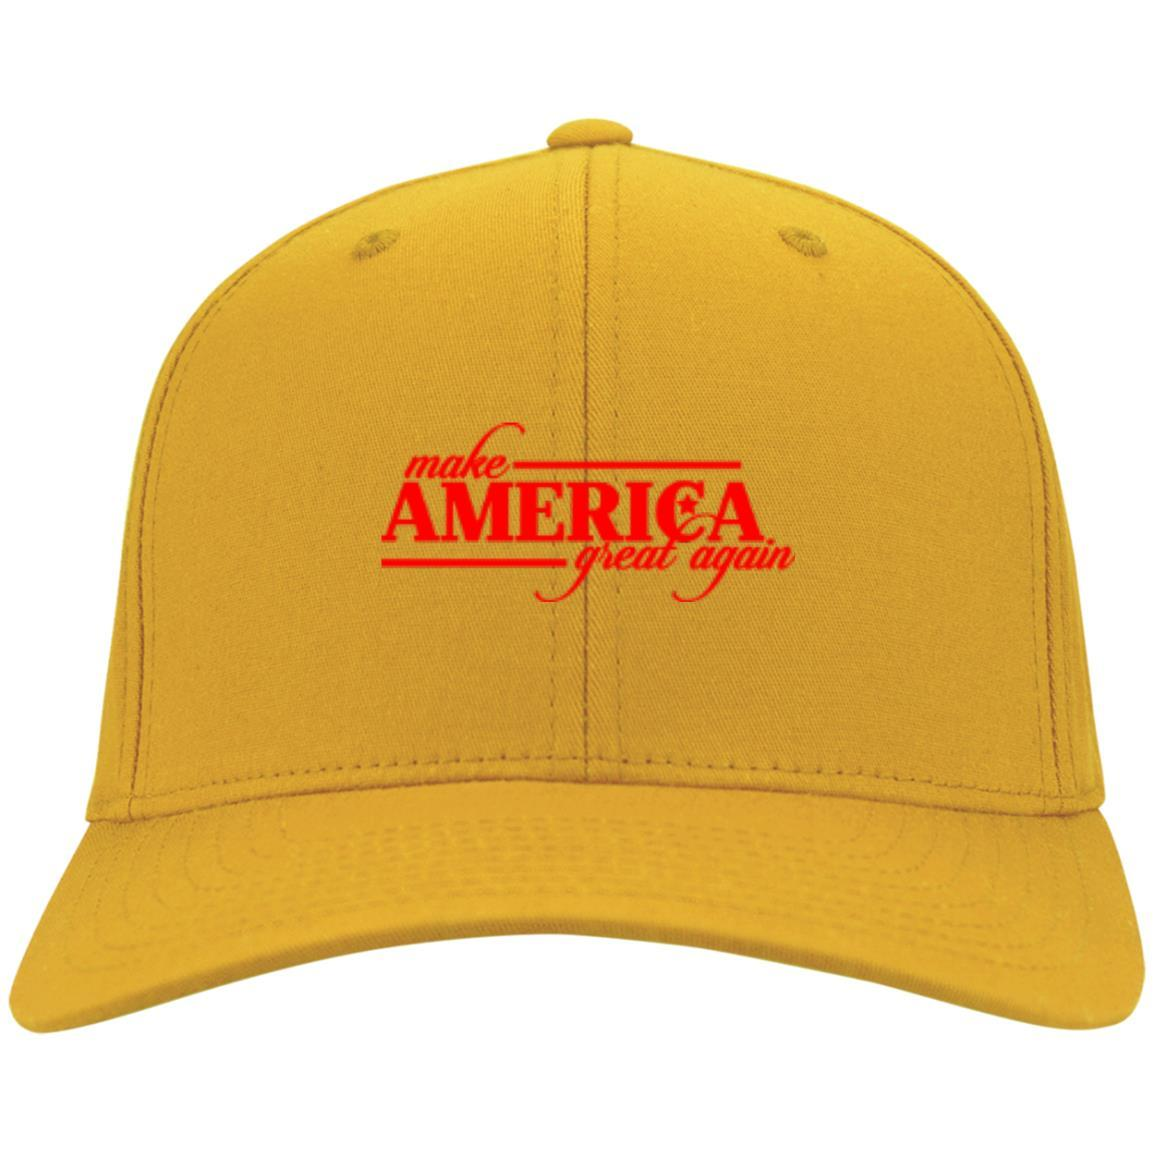 Make America Great Again - Port & Co. Twill Cap Gold